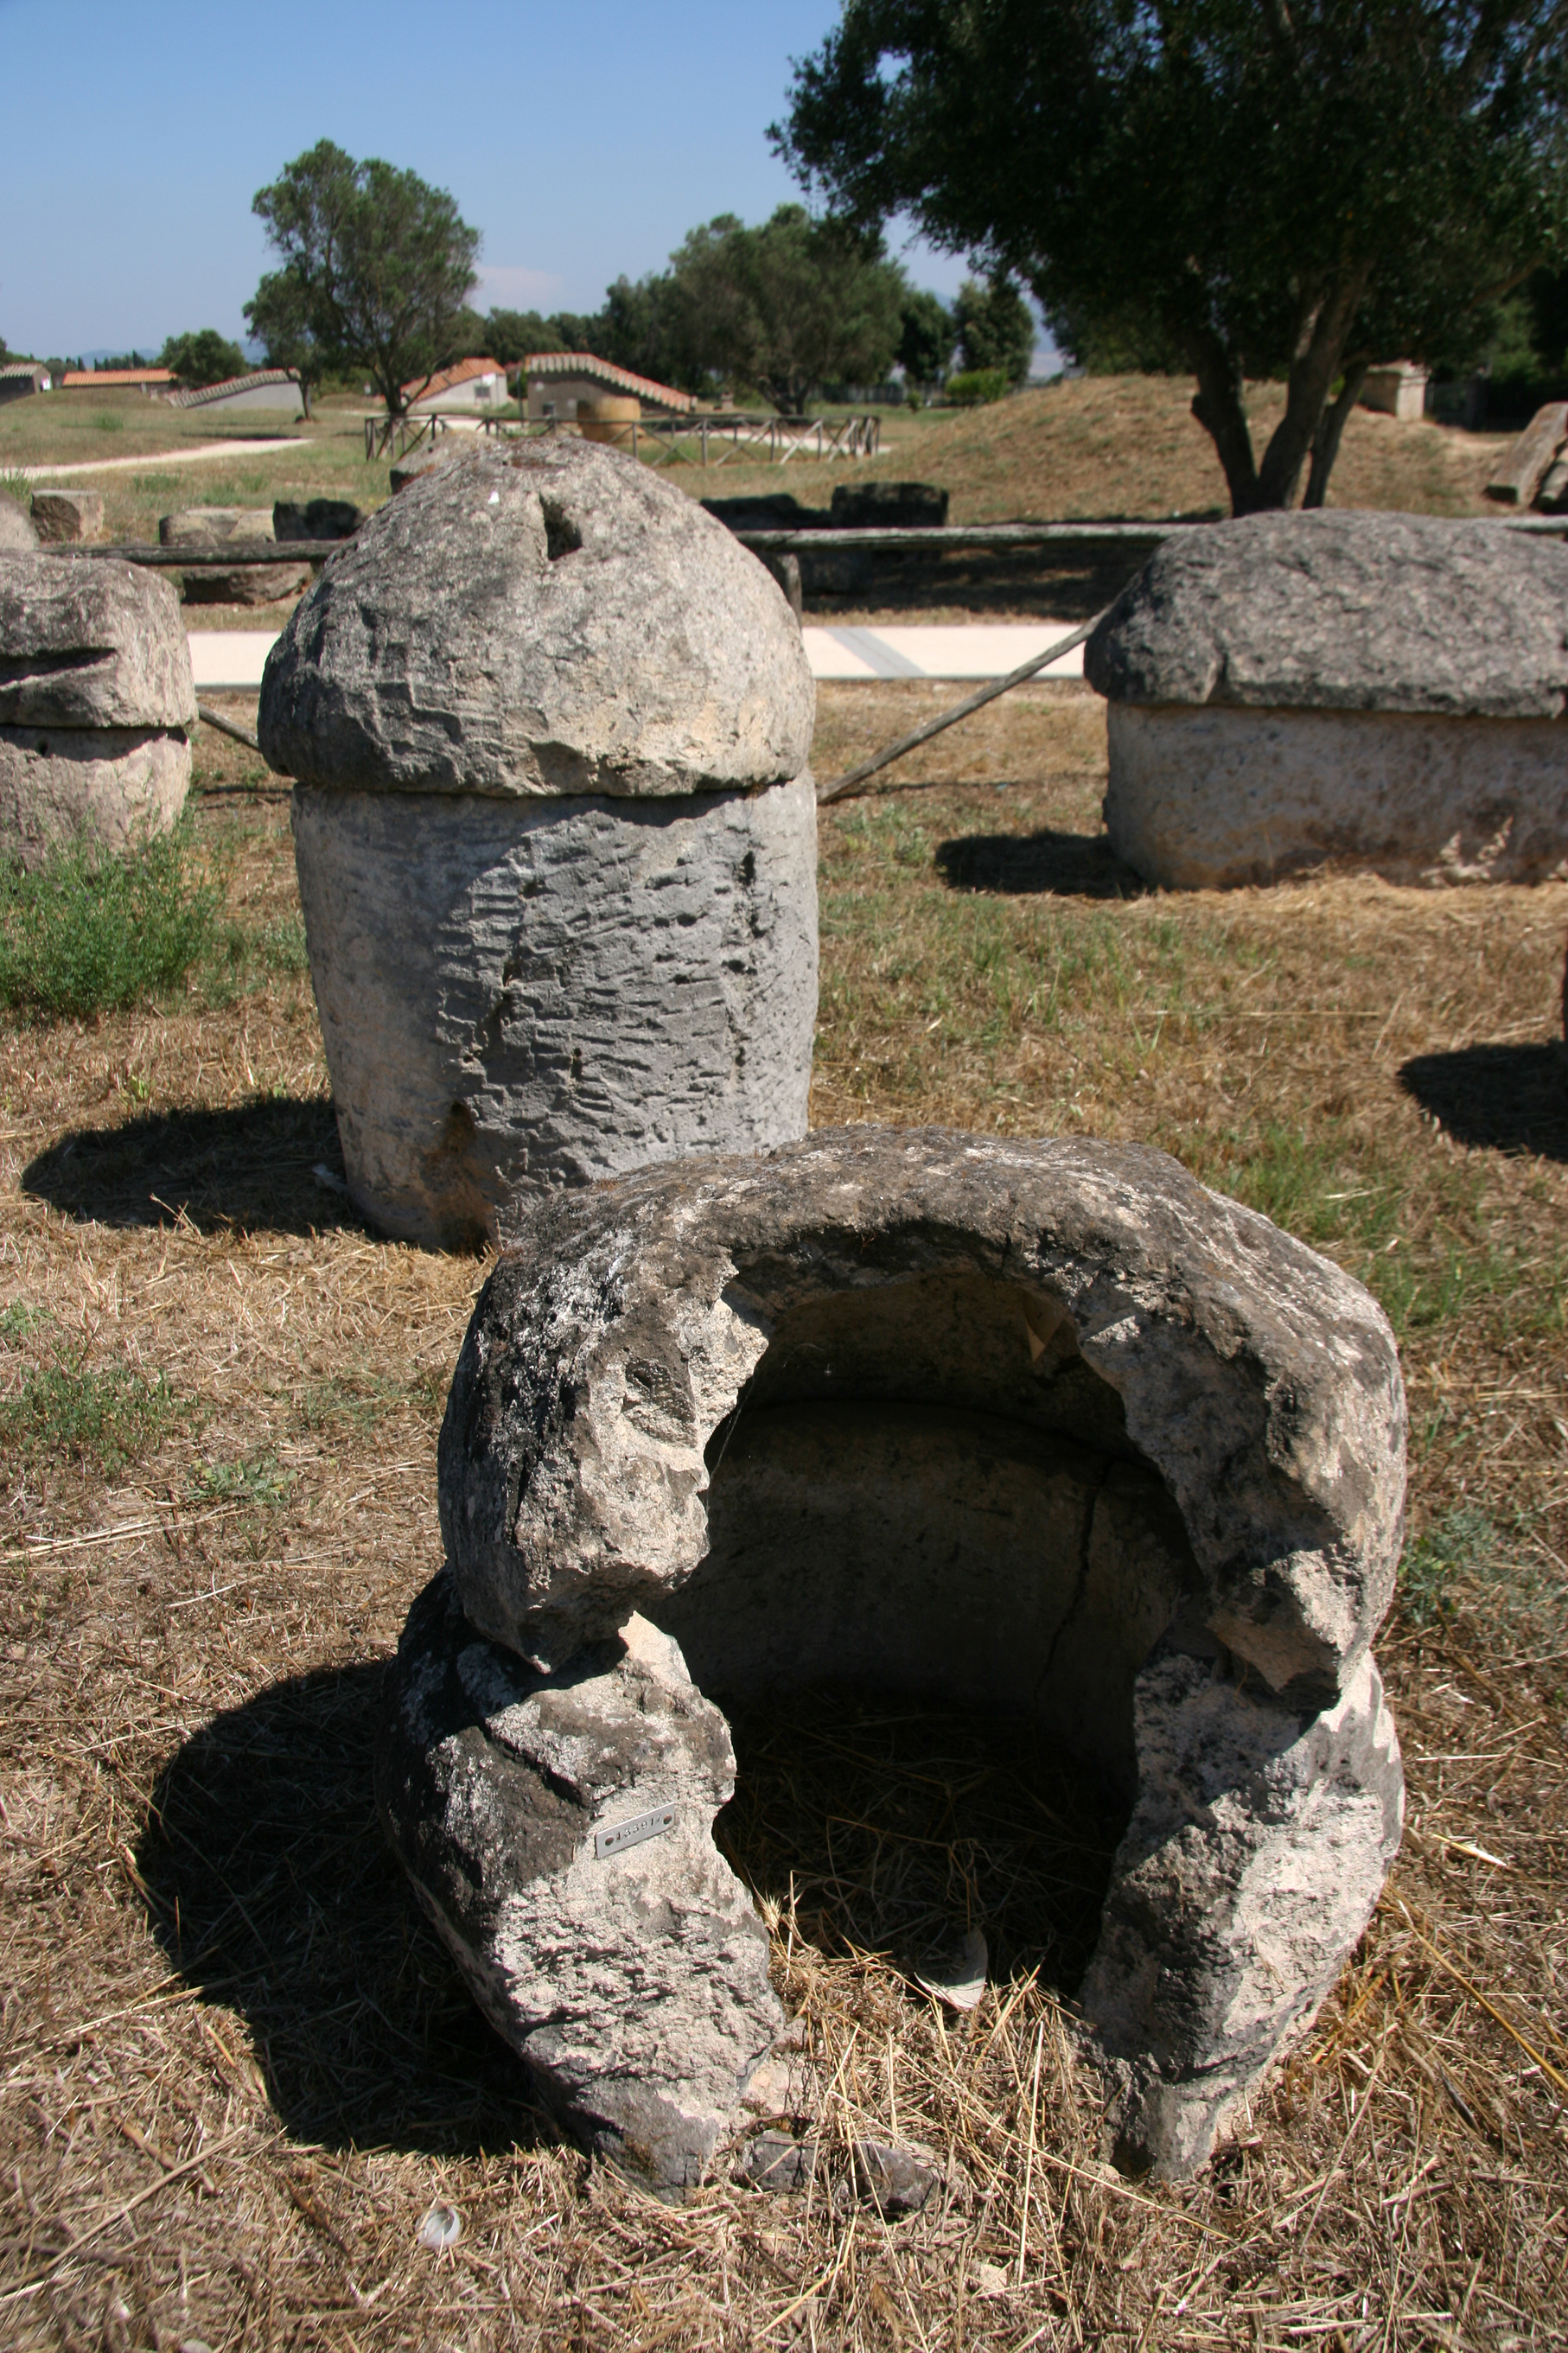 Stone urns are scattered about the place.